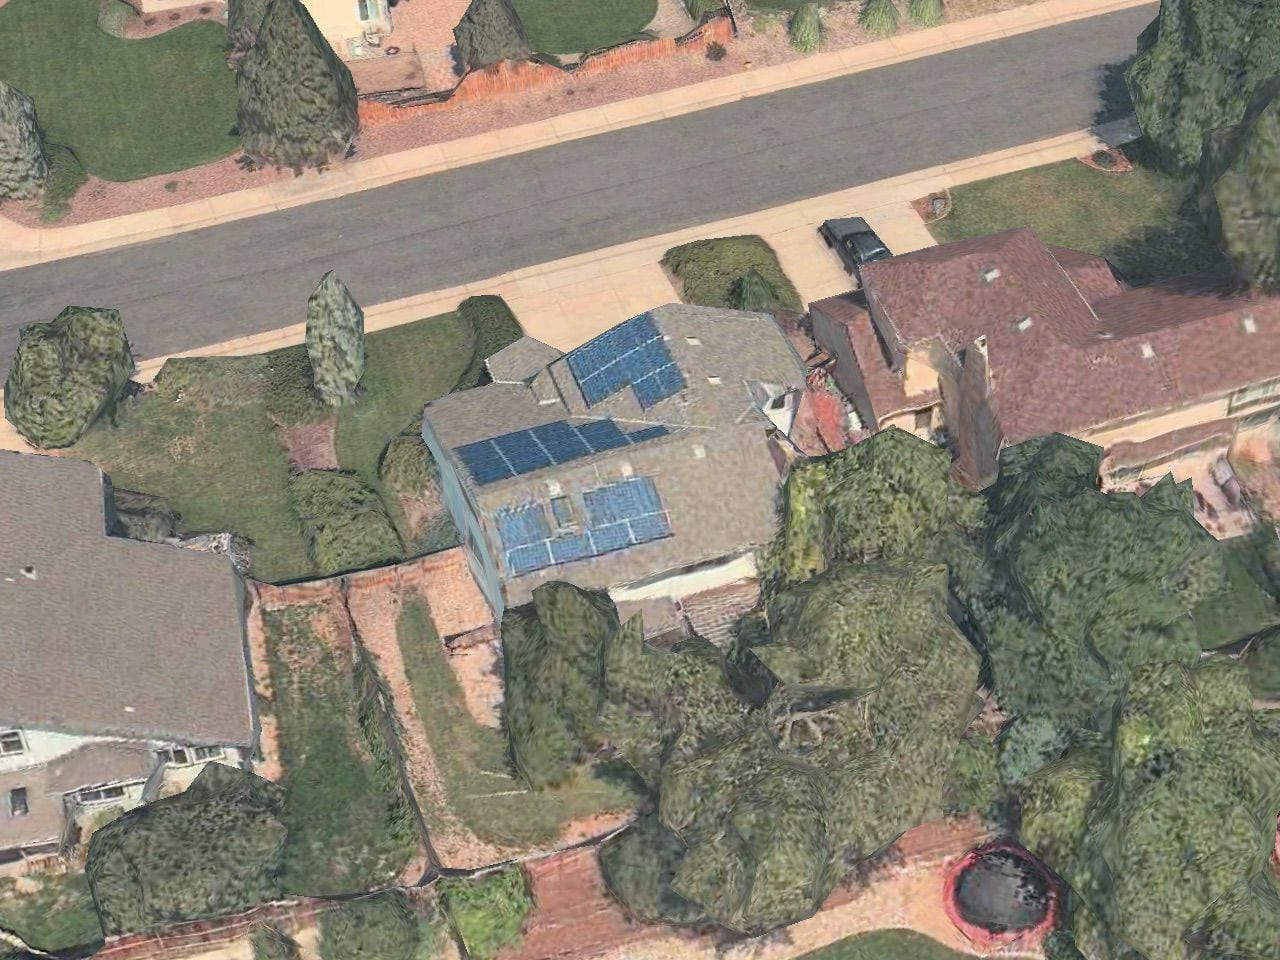 An Apple Maps 3D View of the Solar Panels on the Author's Home